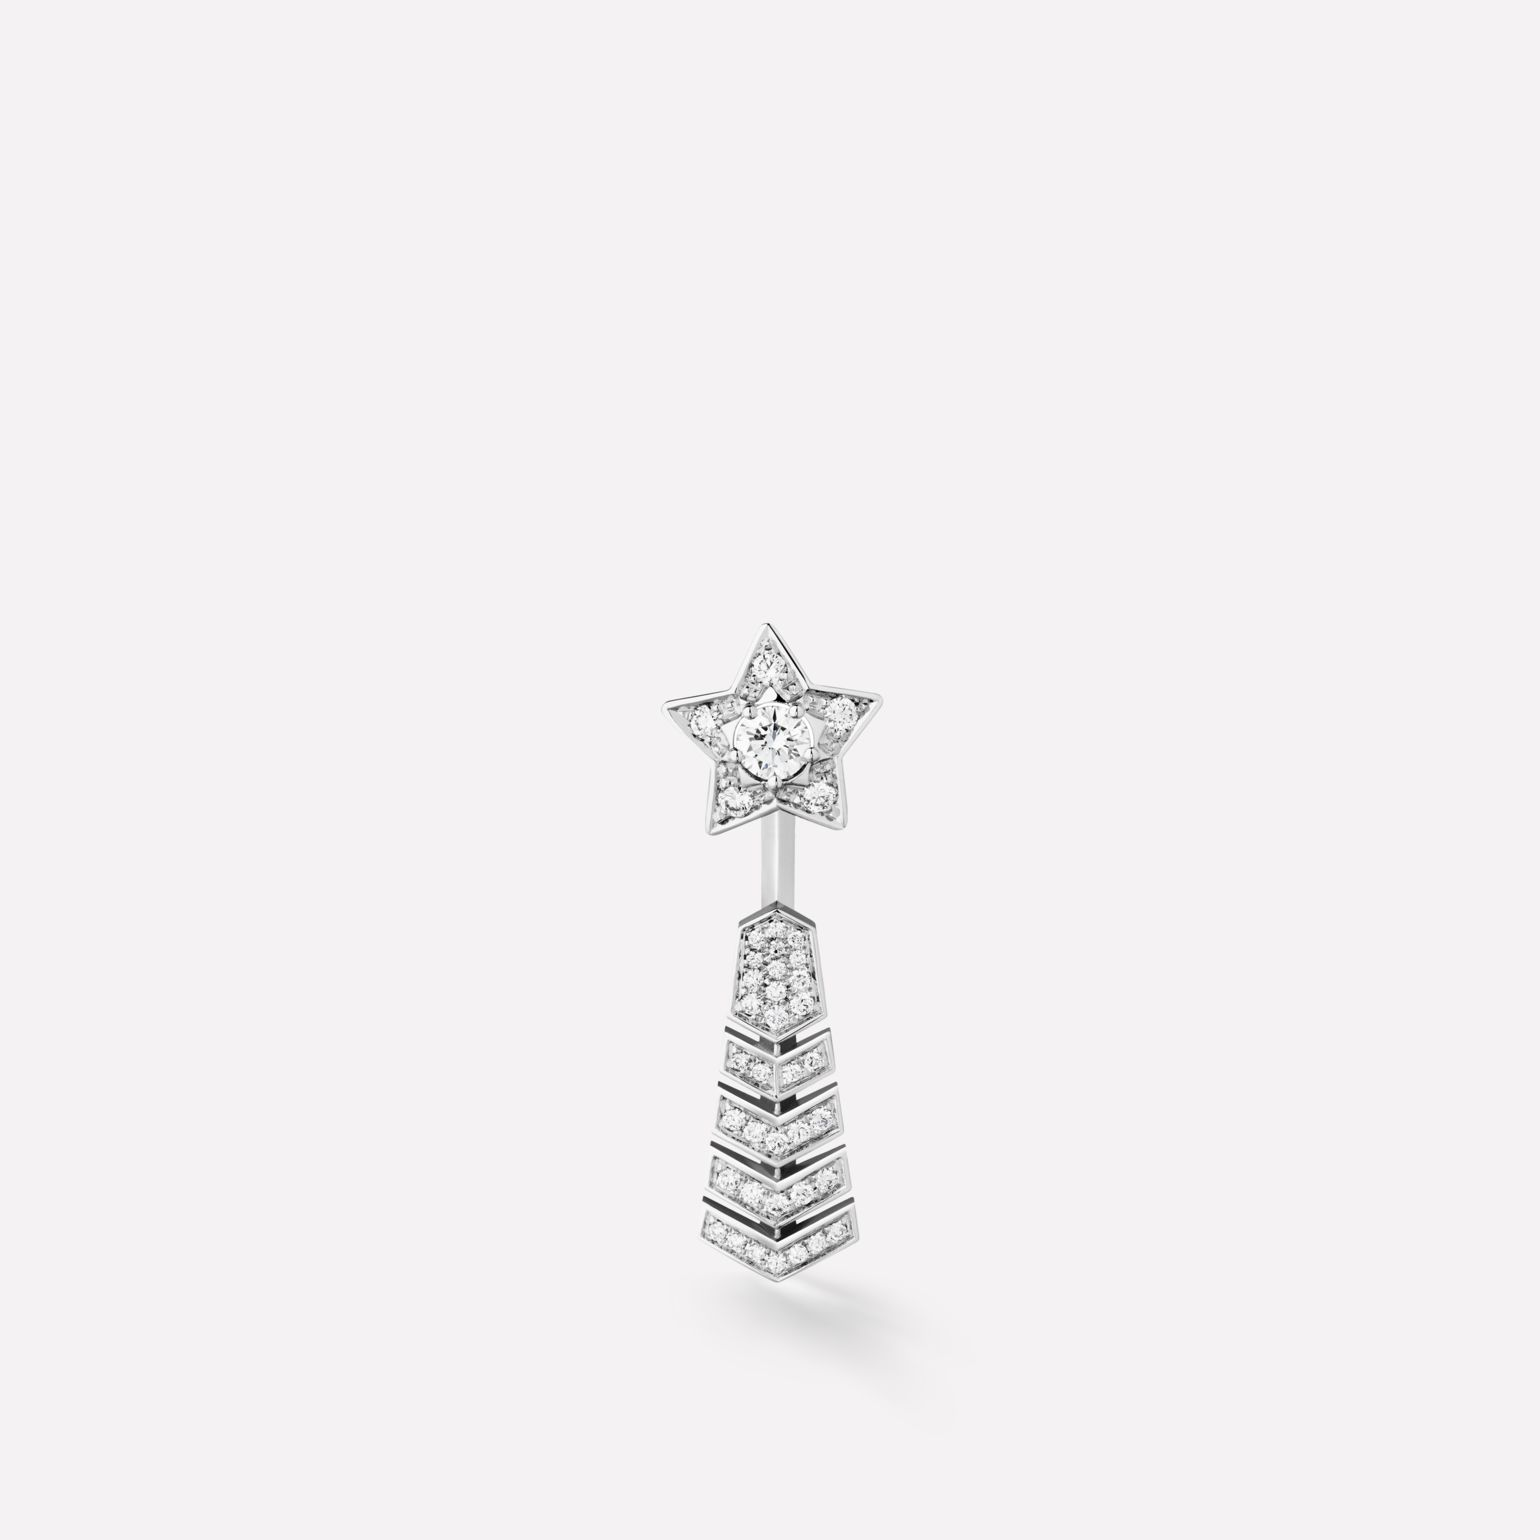 Comète Chevron single earring 18K white gold, diamonds